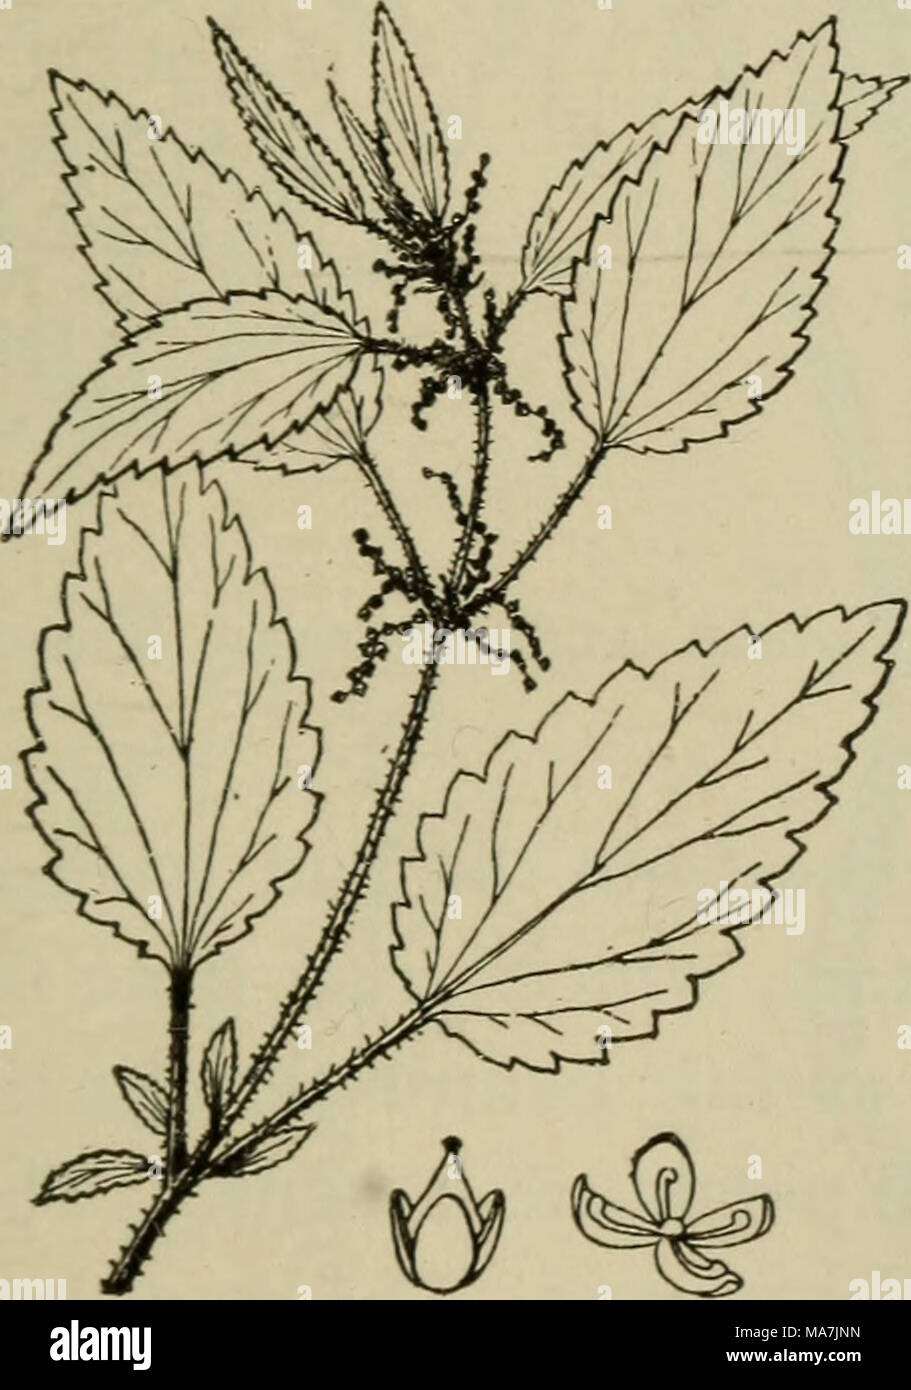 . Elementary botany . Fig. 344- The dioecious nettle (Urticadioica), showing leaves, flower clusters, and below staminate flower at the right and pistillate flower at left. - Stock Image